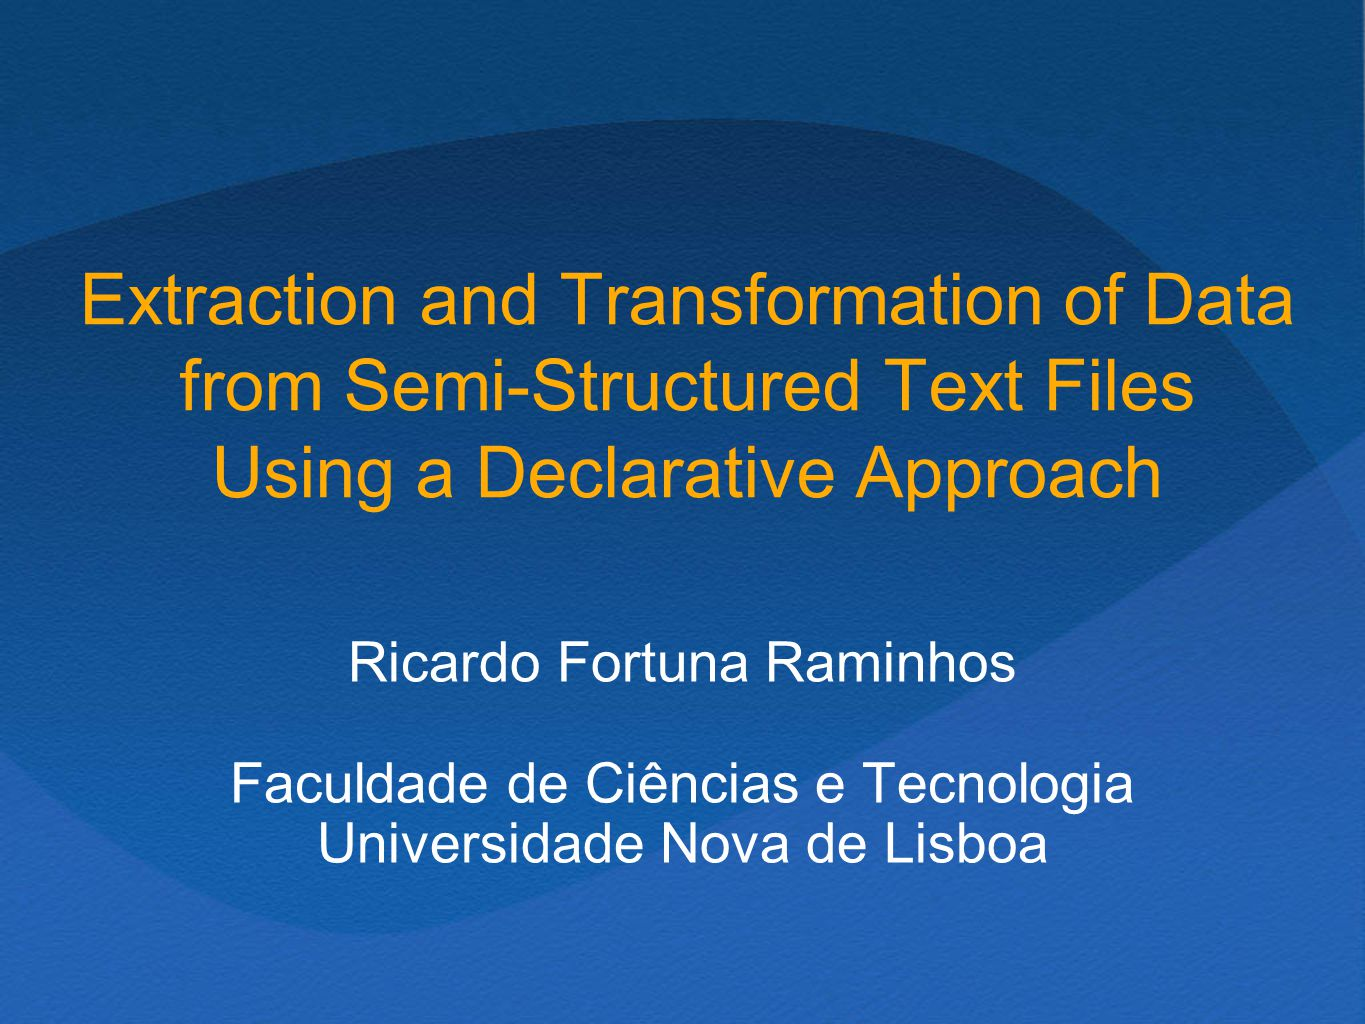 Extraction and Transformation of Data from Semi-Structured Text Files Using a Declarative Approach Ricardo Fortuna Raminhos Faculdade de Ciências e Tecnologia Universidade Nova de Lisboa